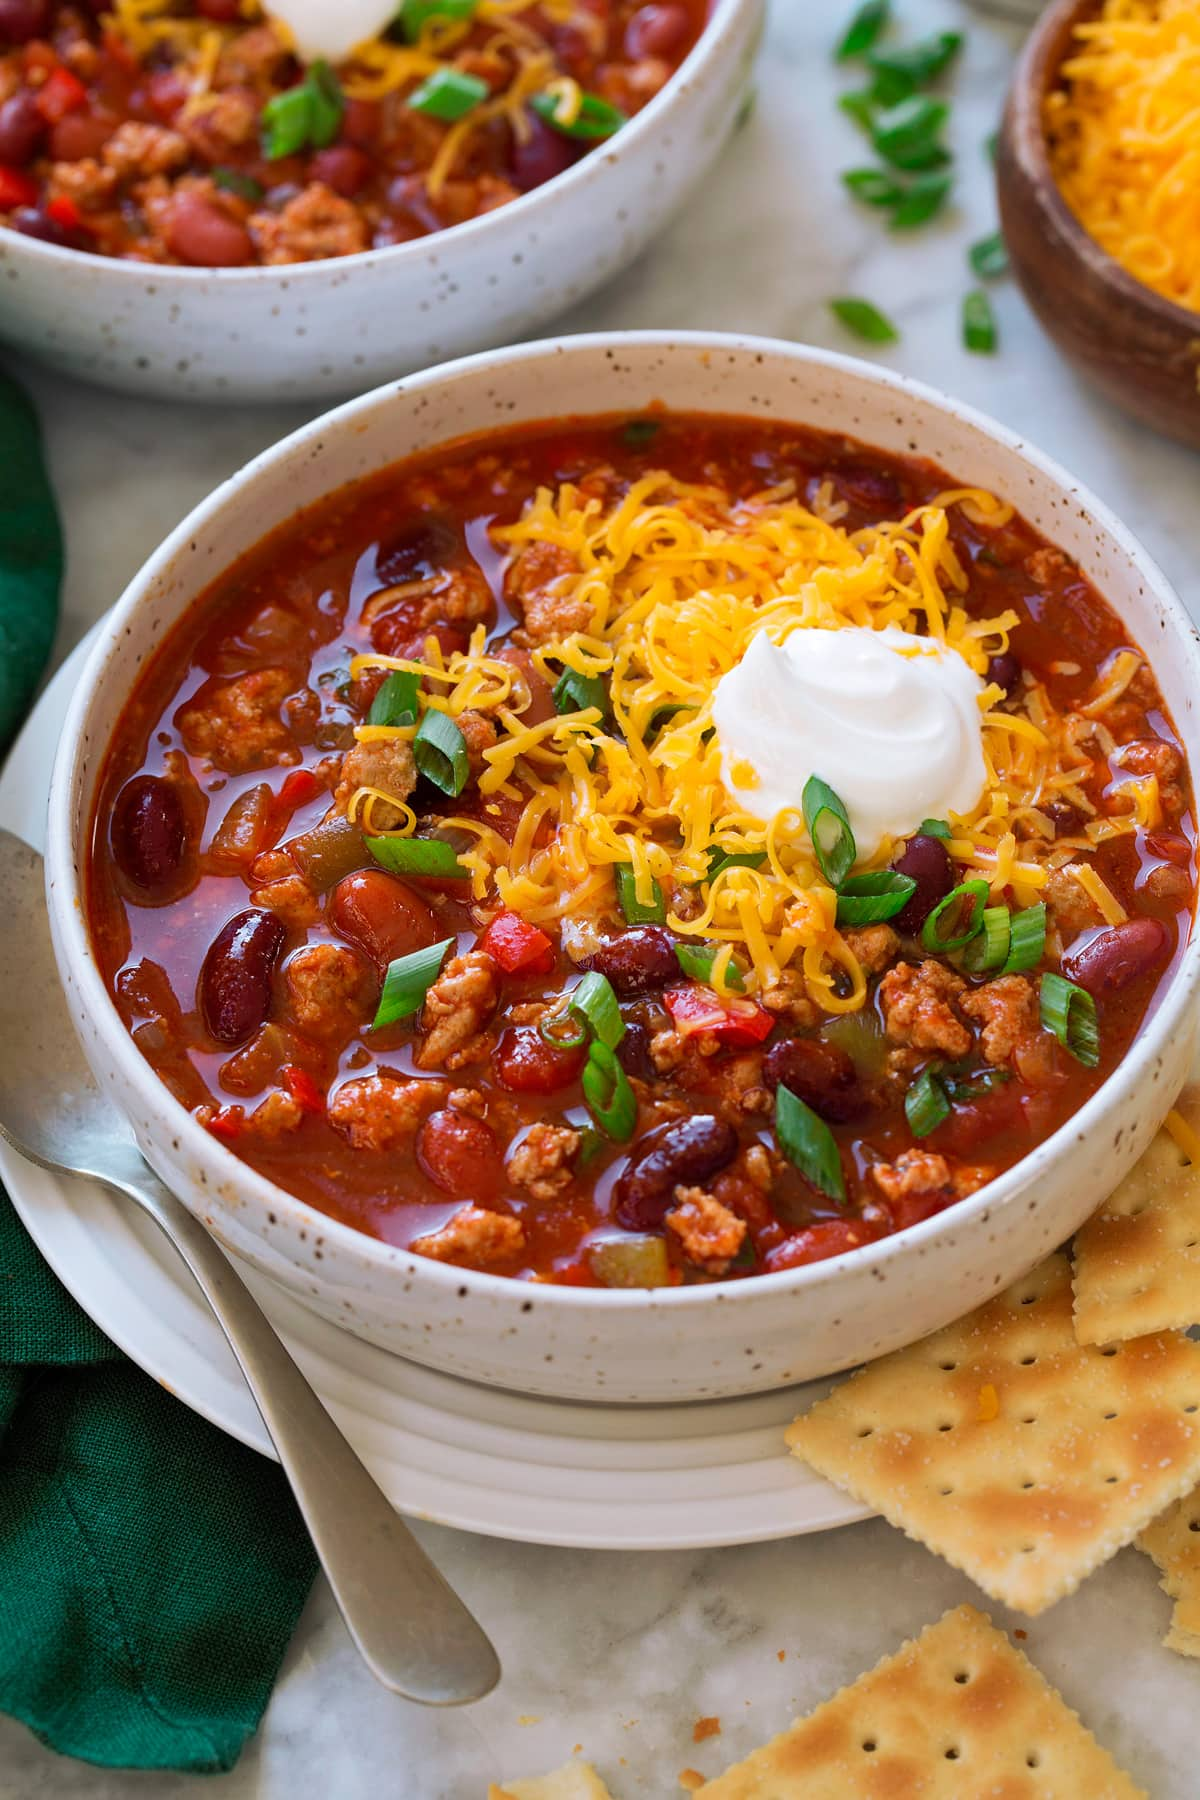 Serving of turkey chili in a white bowl set over a white plate with a spoon and saltine crackers to the side. Chili is topped with shredded cheddar cheese and sour cream.